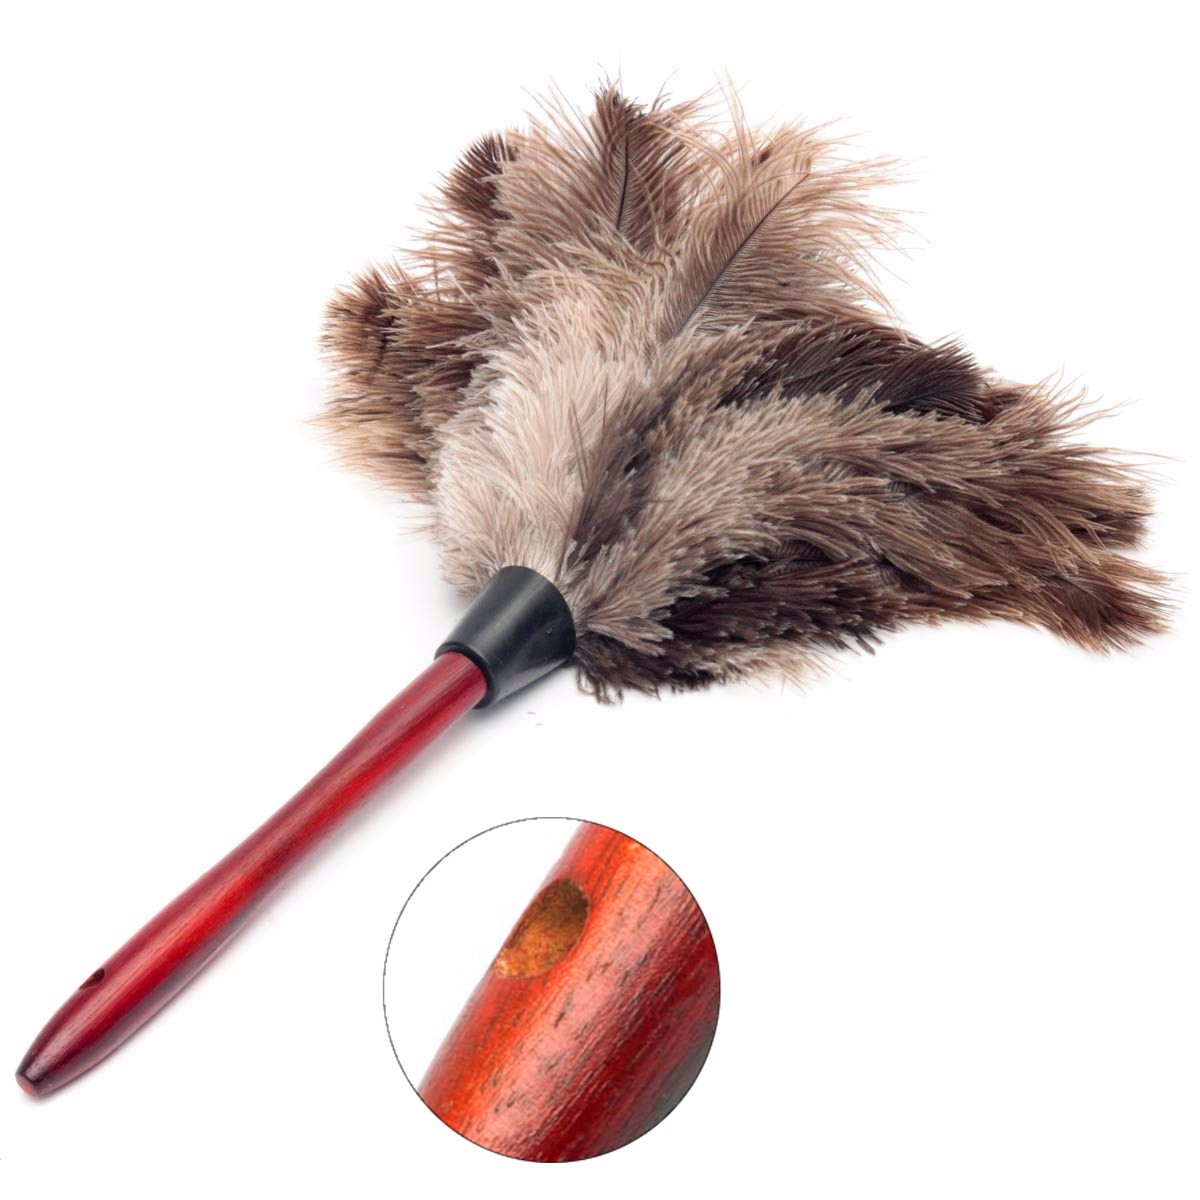 20cm ostrich feather home cleaning duster brush wood handle anti static natural grey fur alex nld. Black Bedroom Furniture Sets. Home Design Ideas